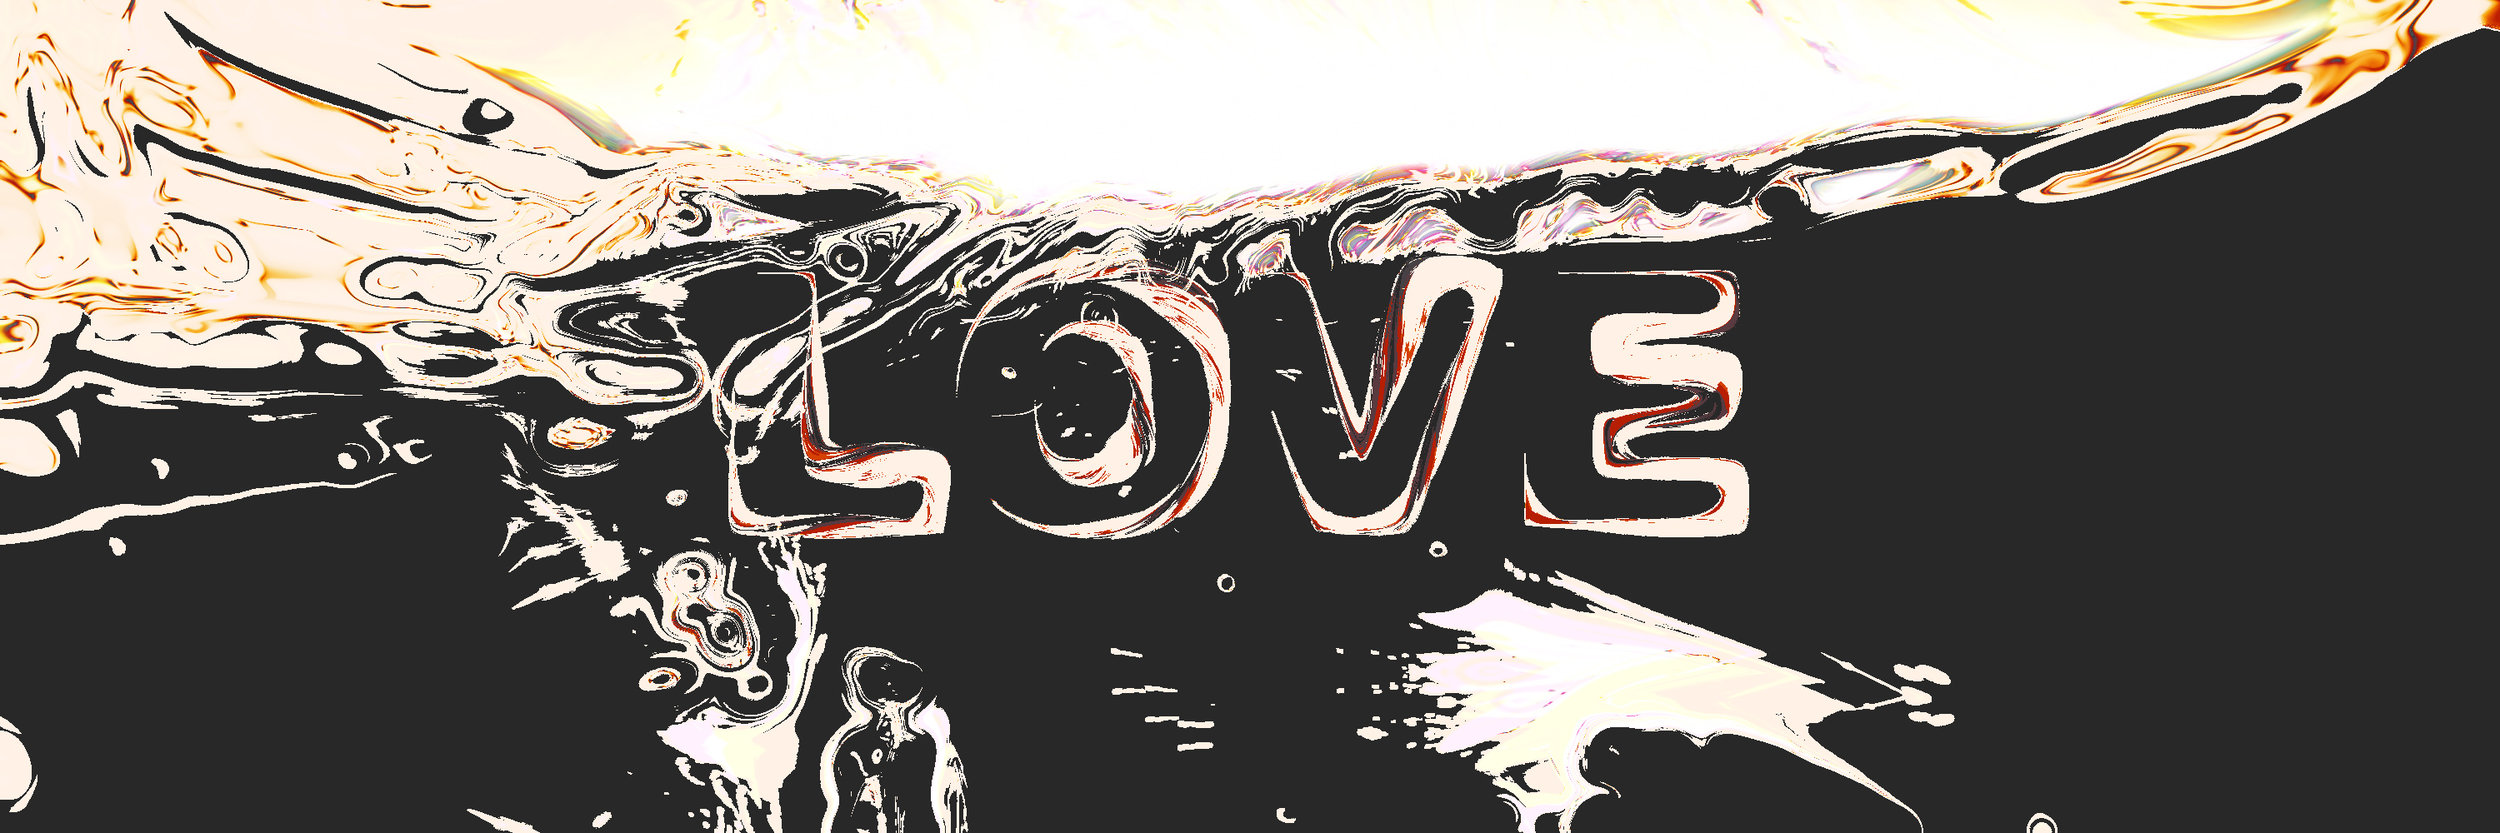 JM_ColourTest_v6_Ink_011_LOVE.jpg